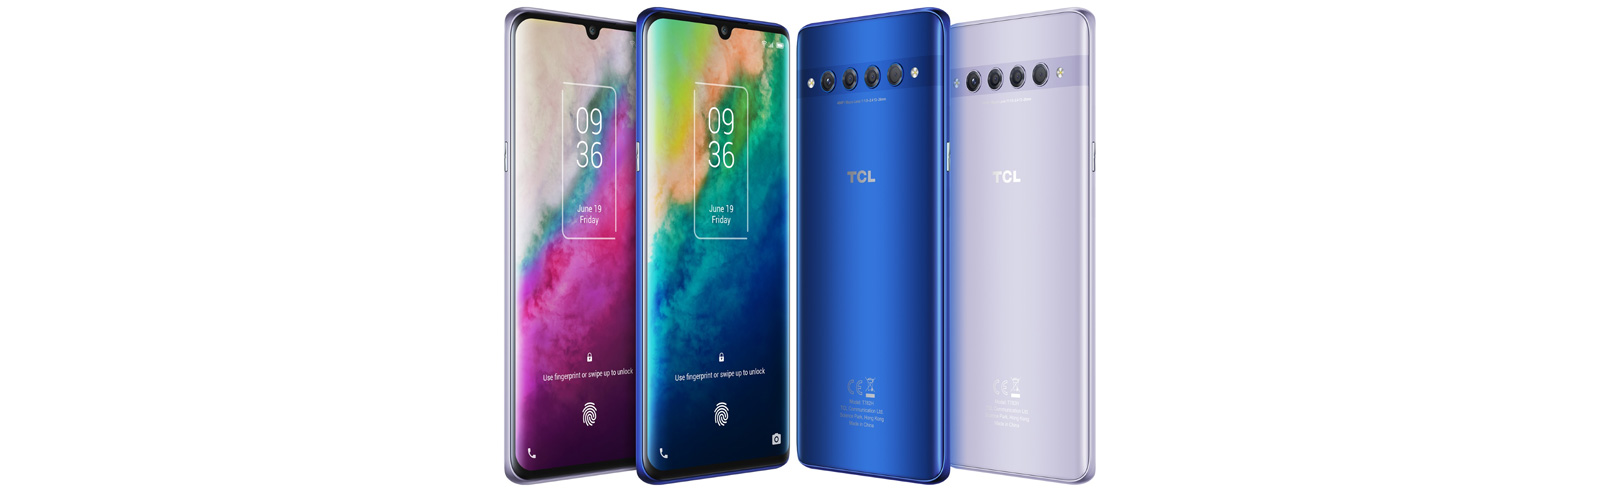 TCL 10 Plus with FHD+ AMOLED display and TCL 10 SE with HD+ IPS display go official in Russia